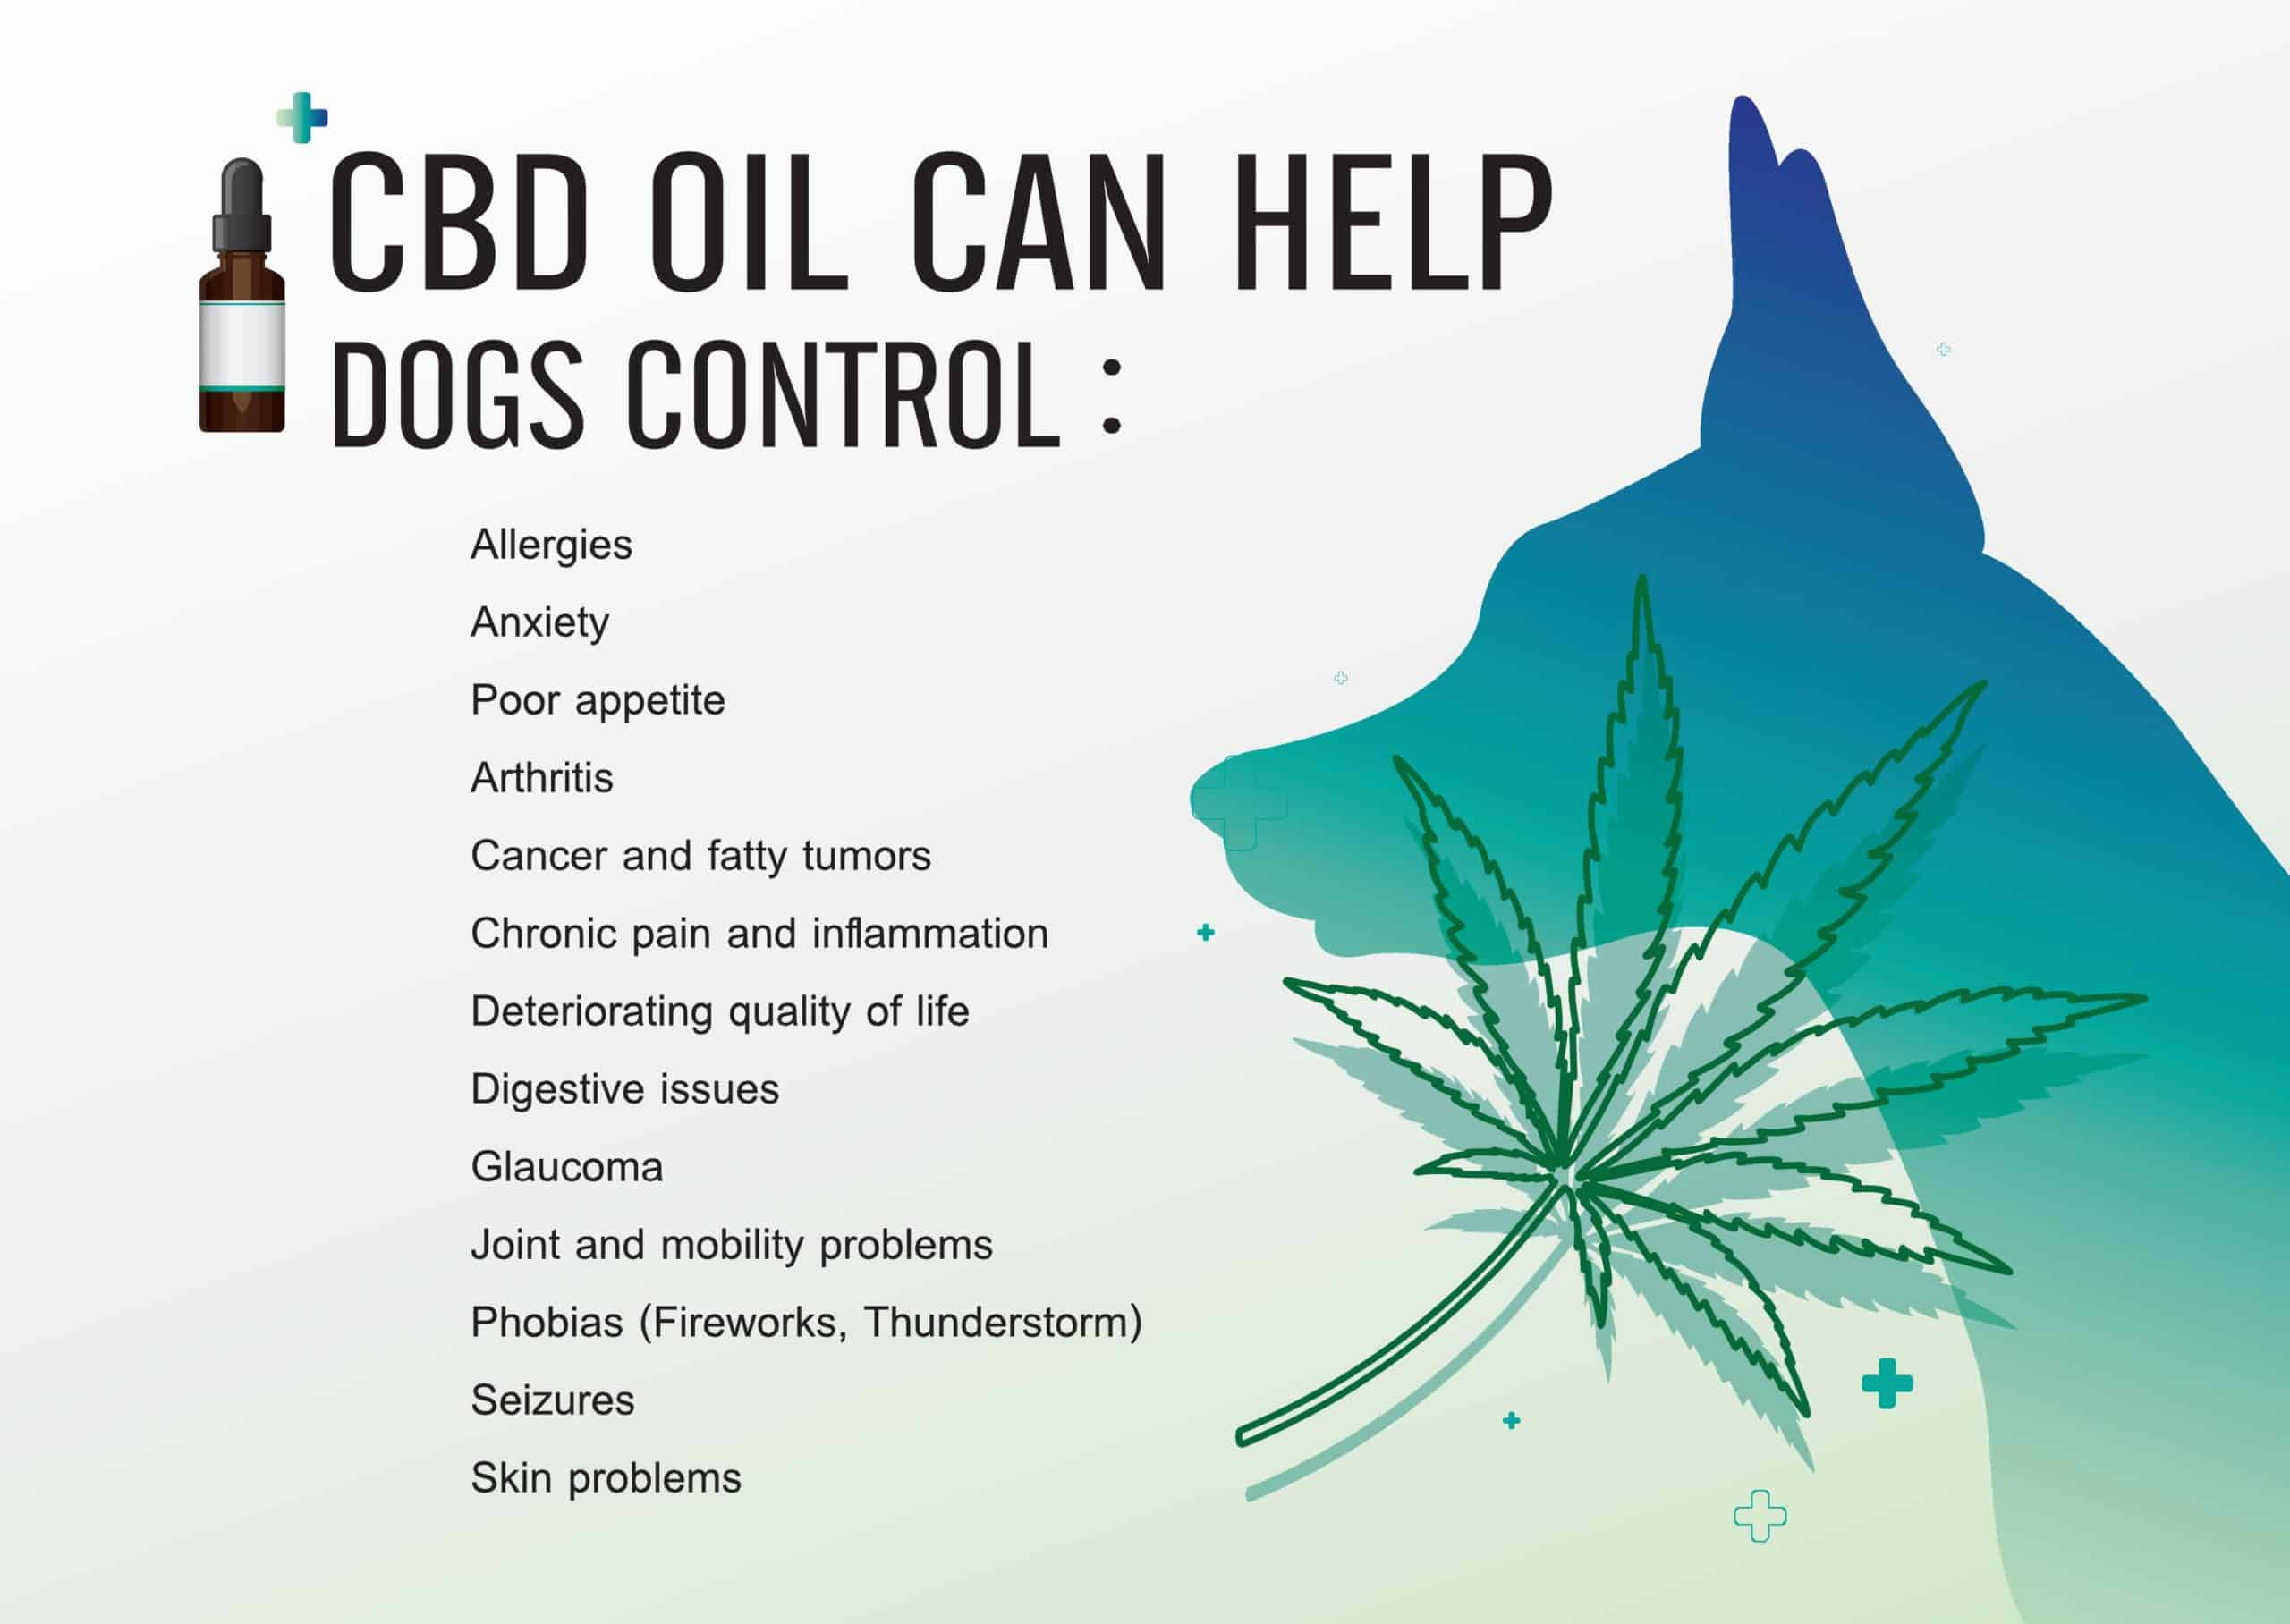 CBD supplements graphic explains benefits for dogs.